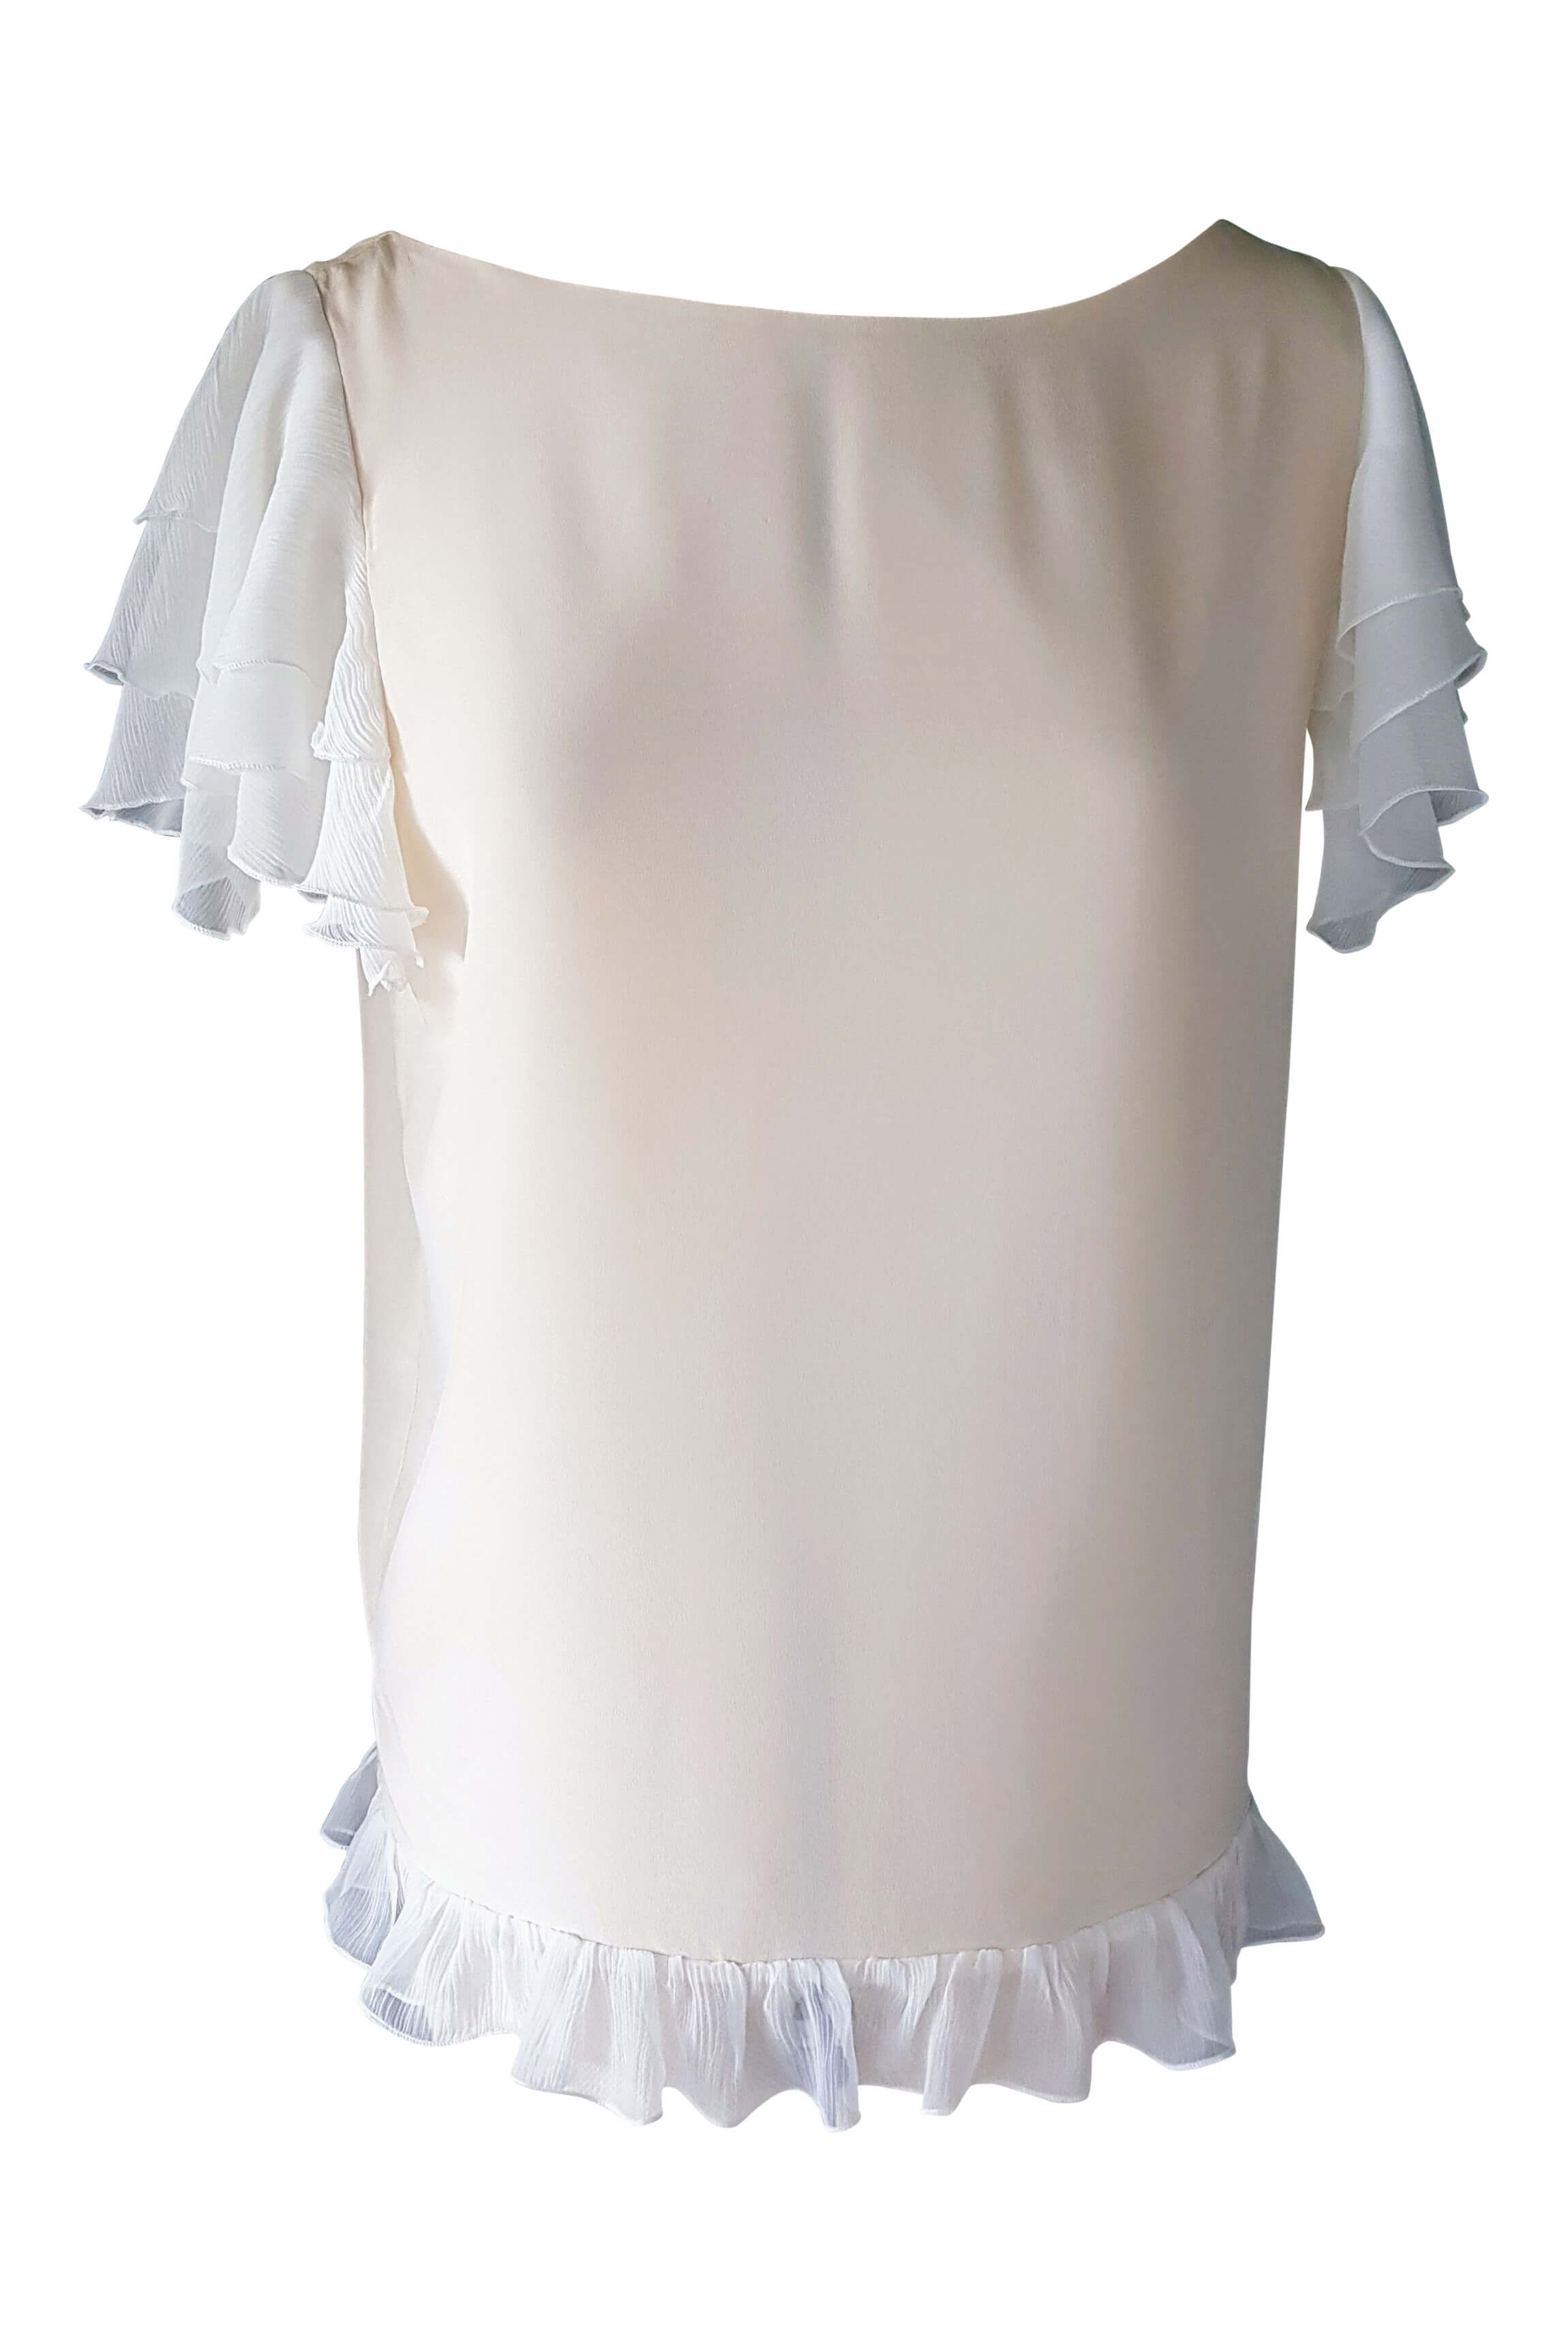 vanilla silk top with white ruches | beige silk blouse with volants LOUISE